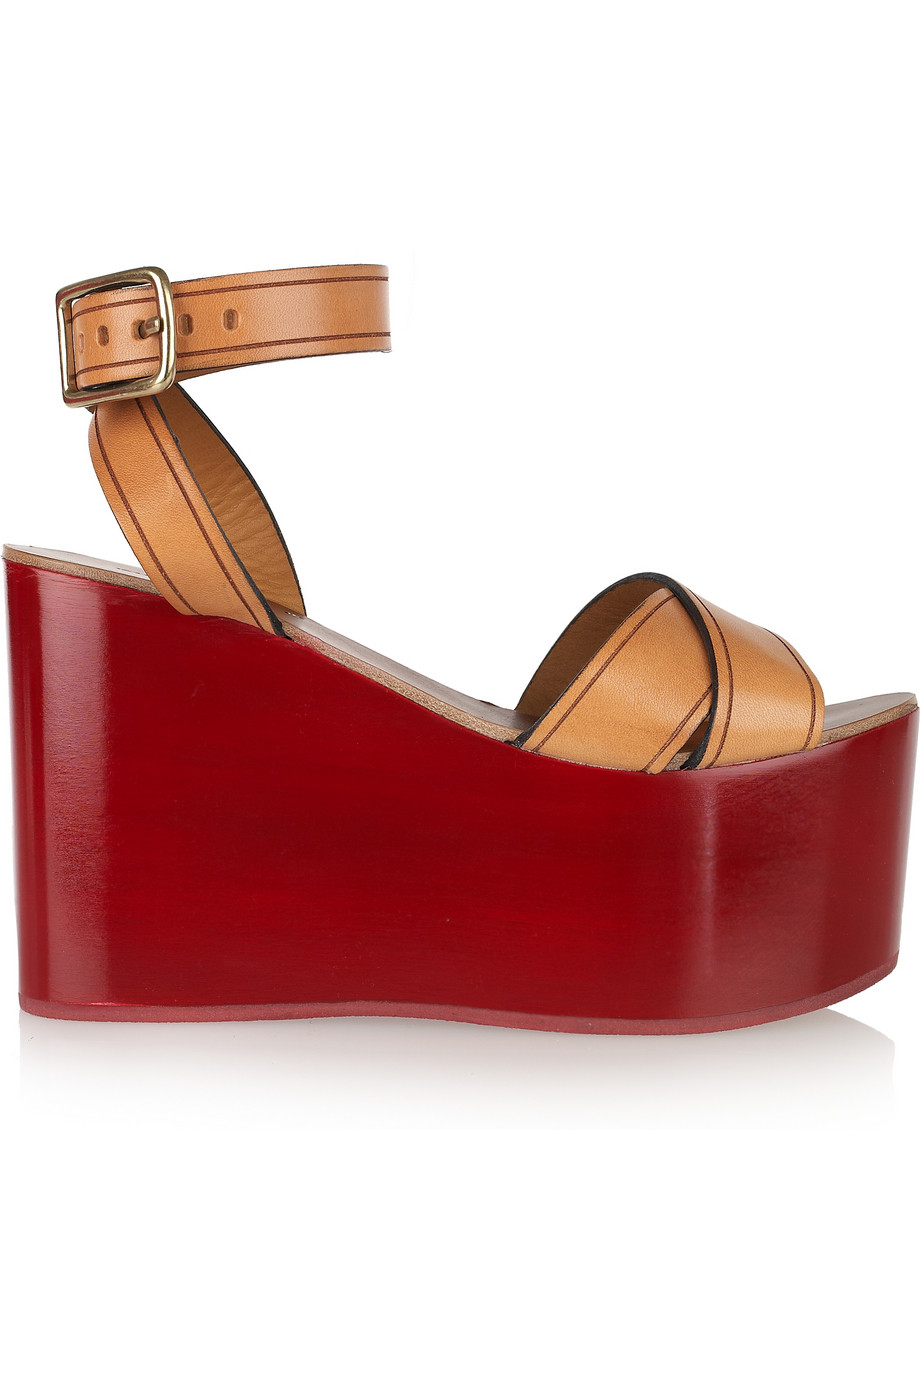 8a0af5ddf454 Lyst - Isabel Marant Zora Leather Lacquered-wedge Sandals in Red